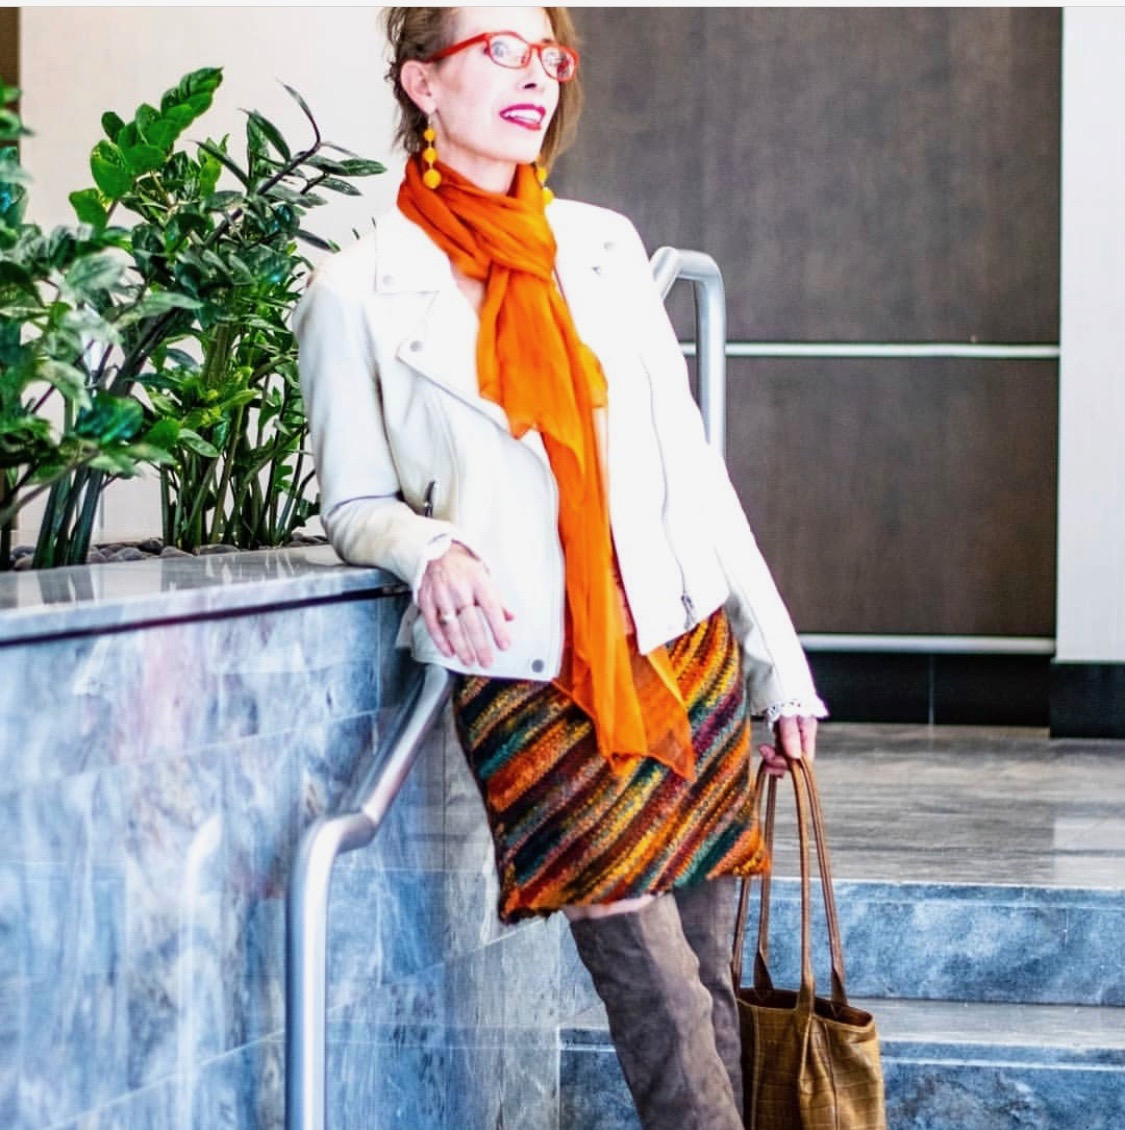 Woman with striped skirt and orange scarf